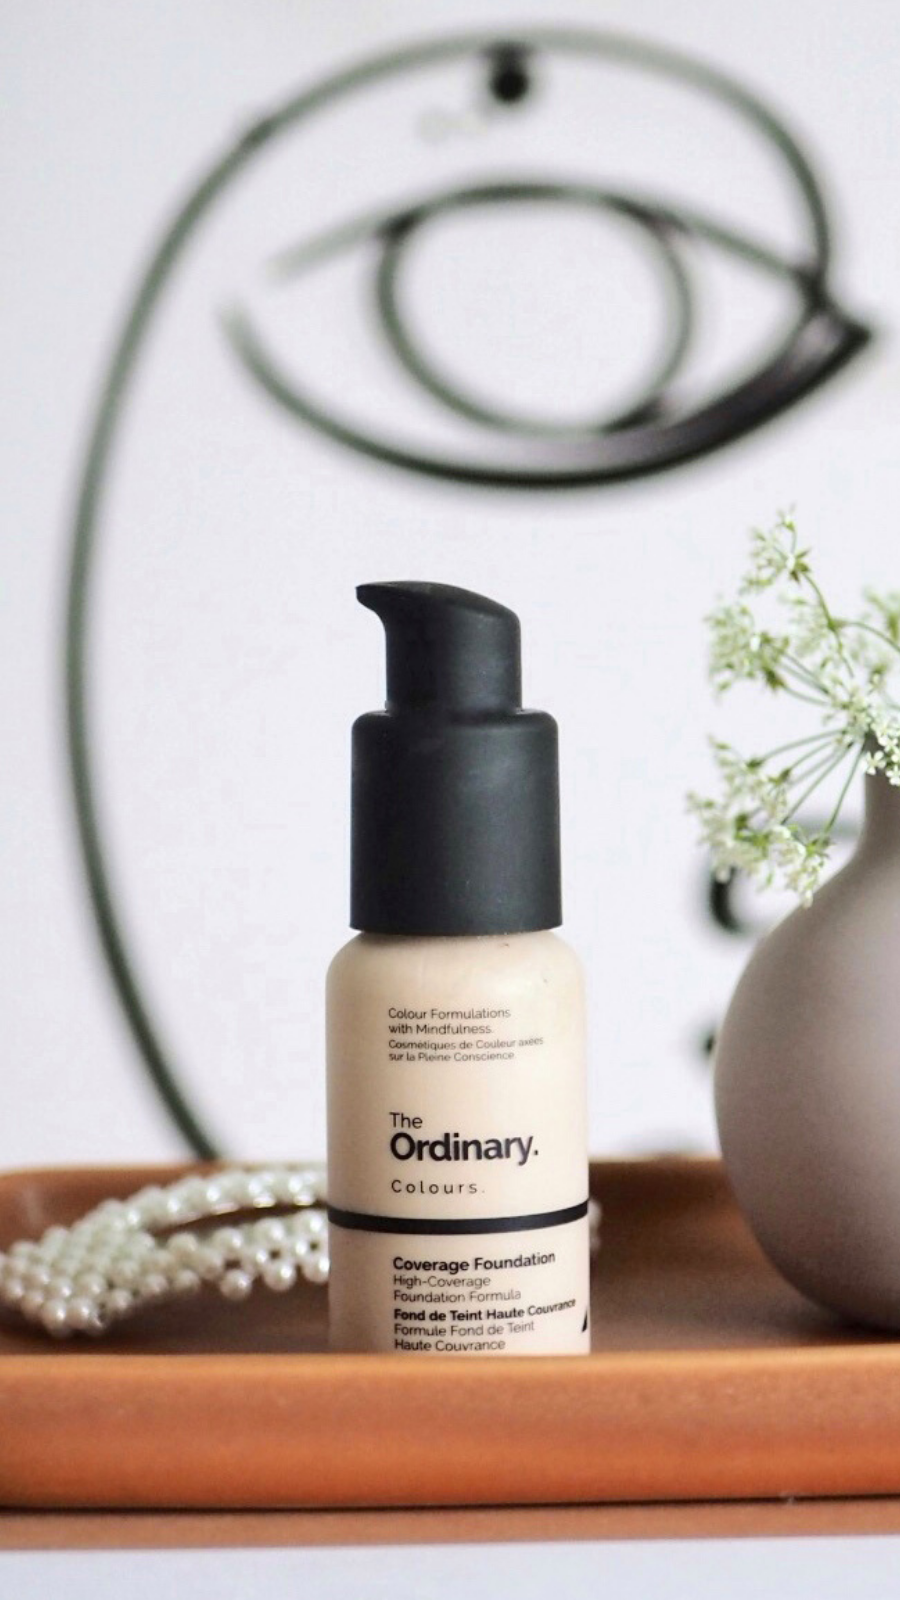 The Ordinary foundation review from is The